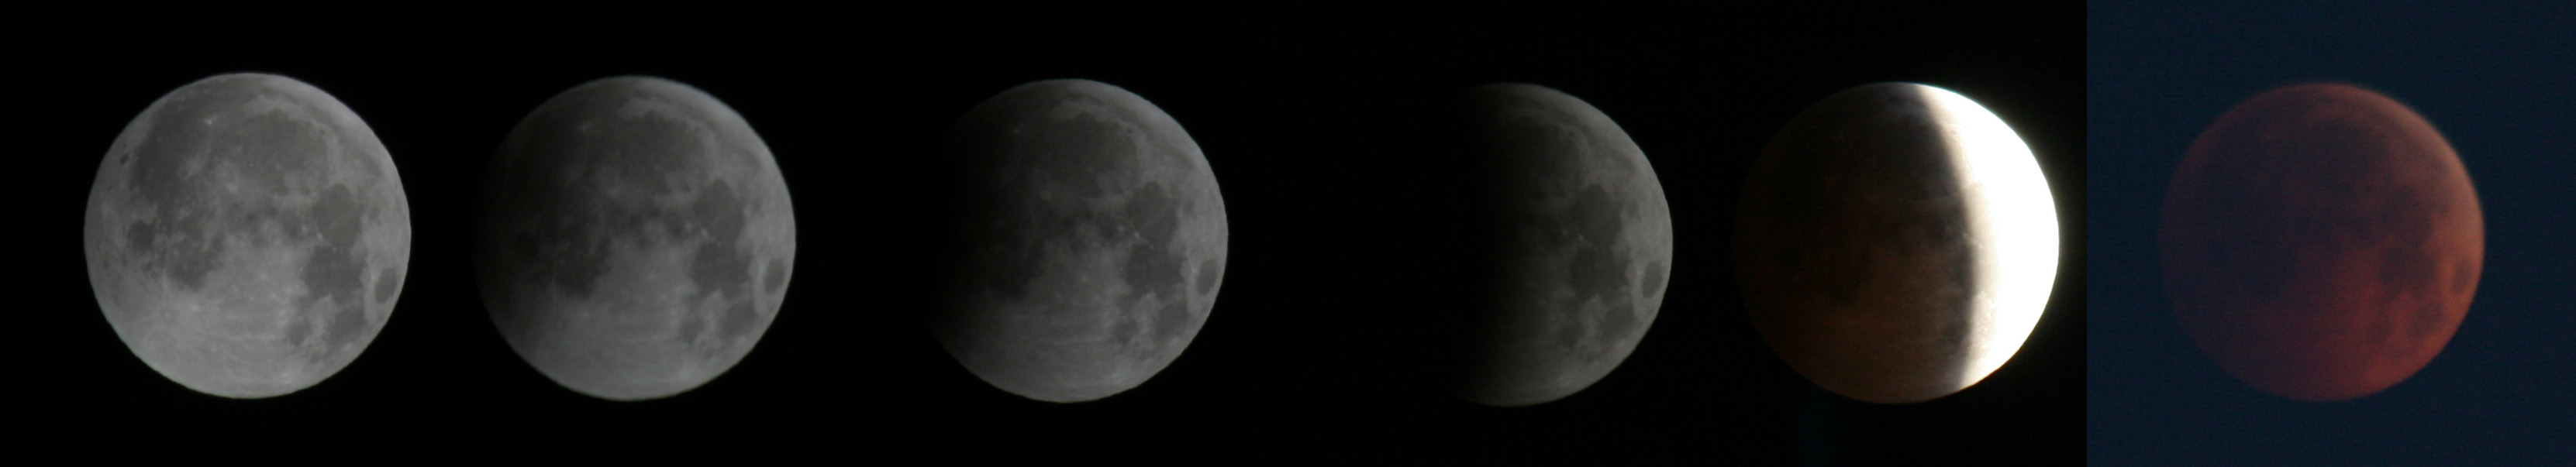 Lunar Eclipse Composite for GAS 2019